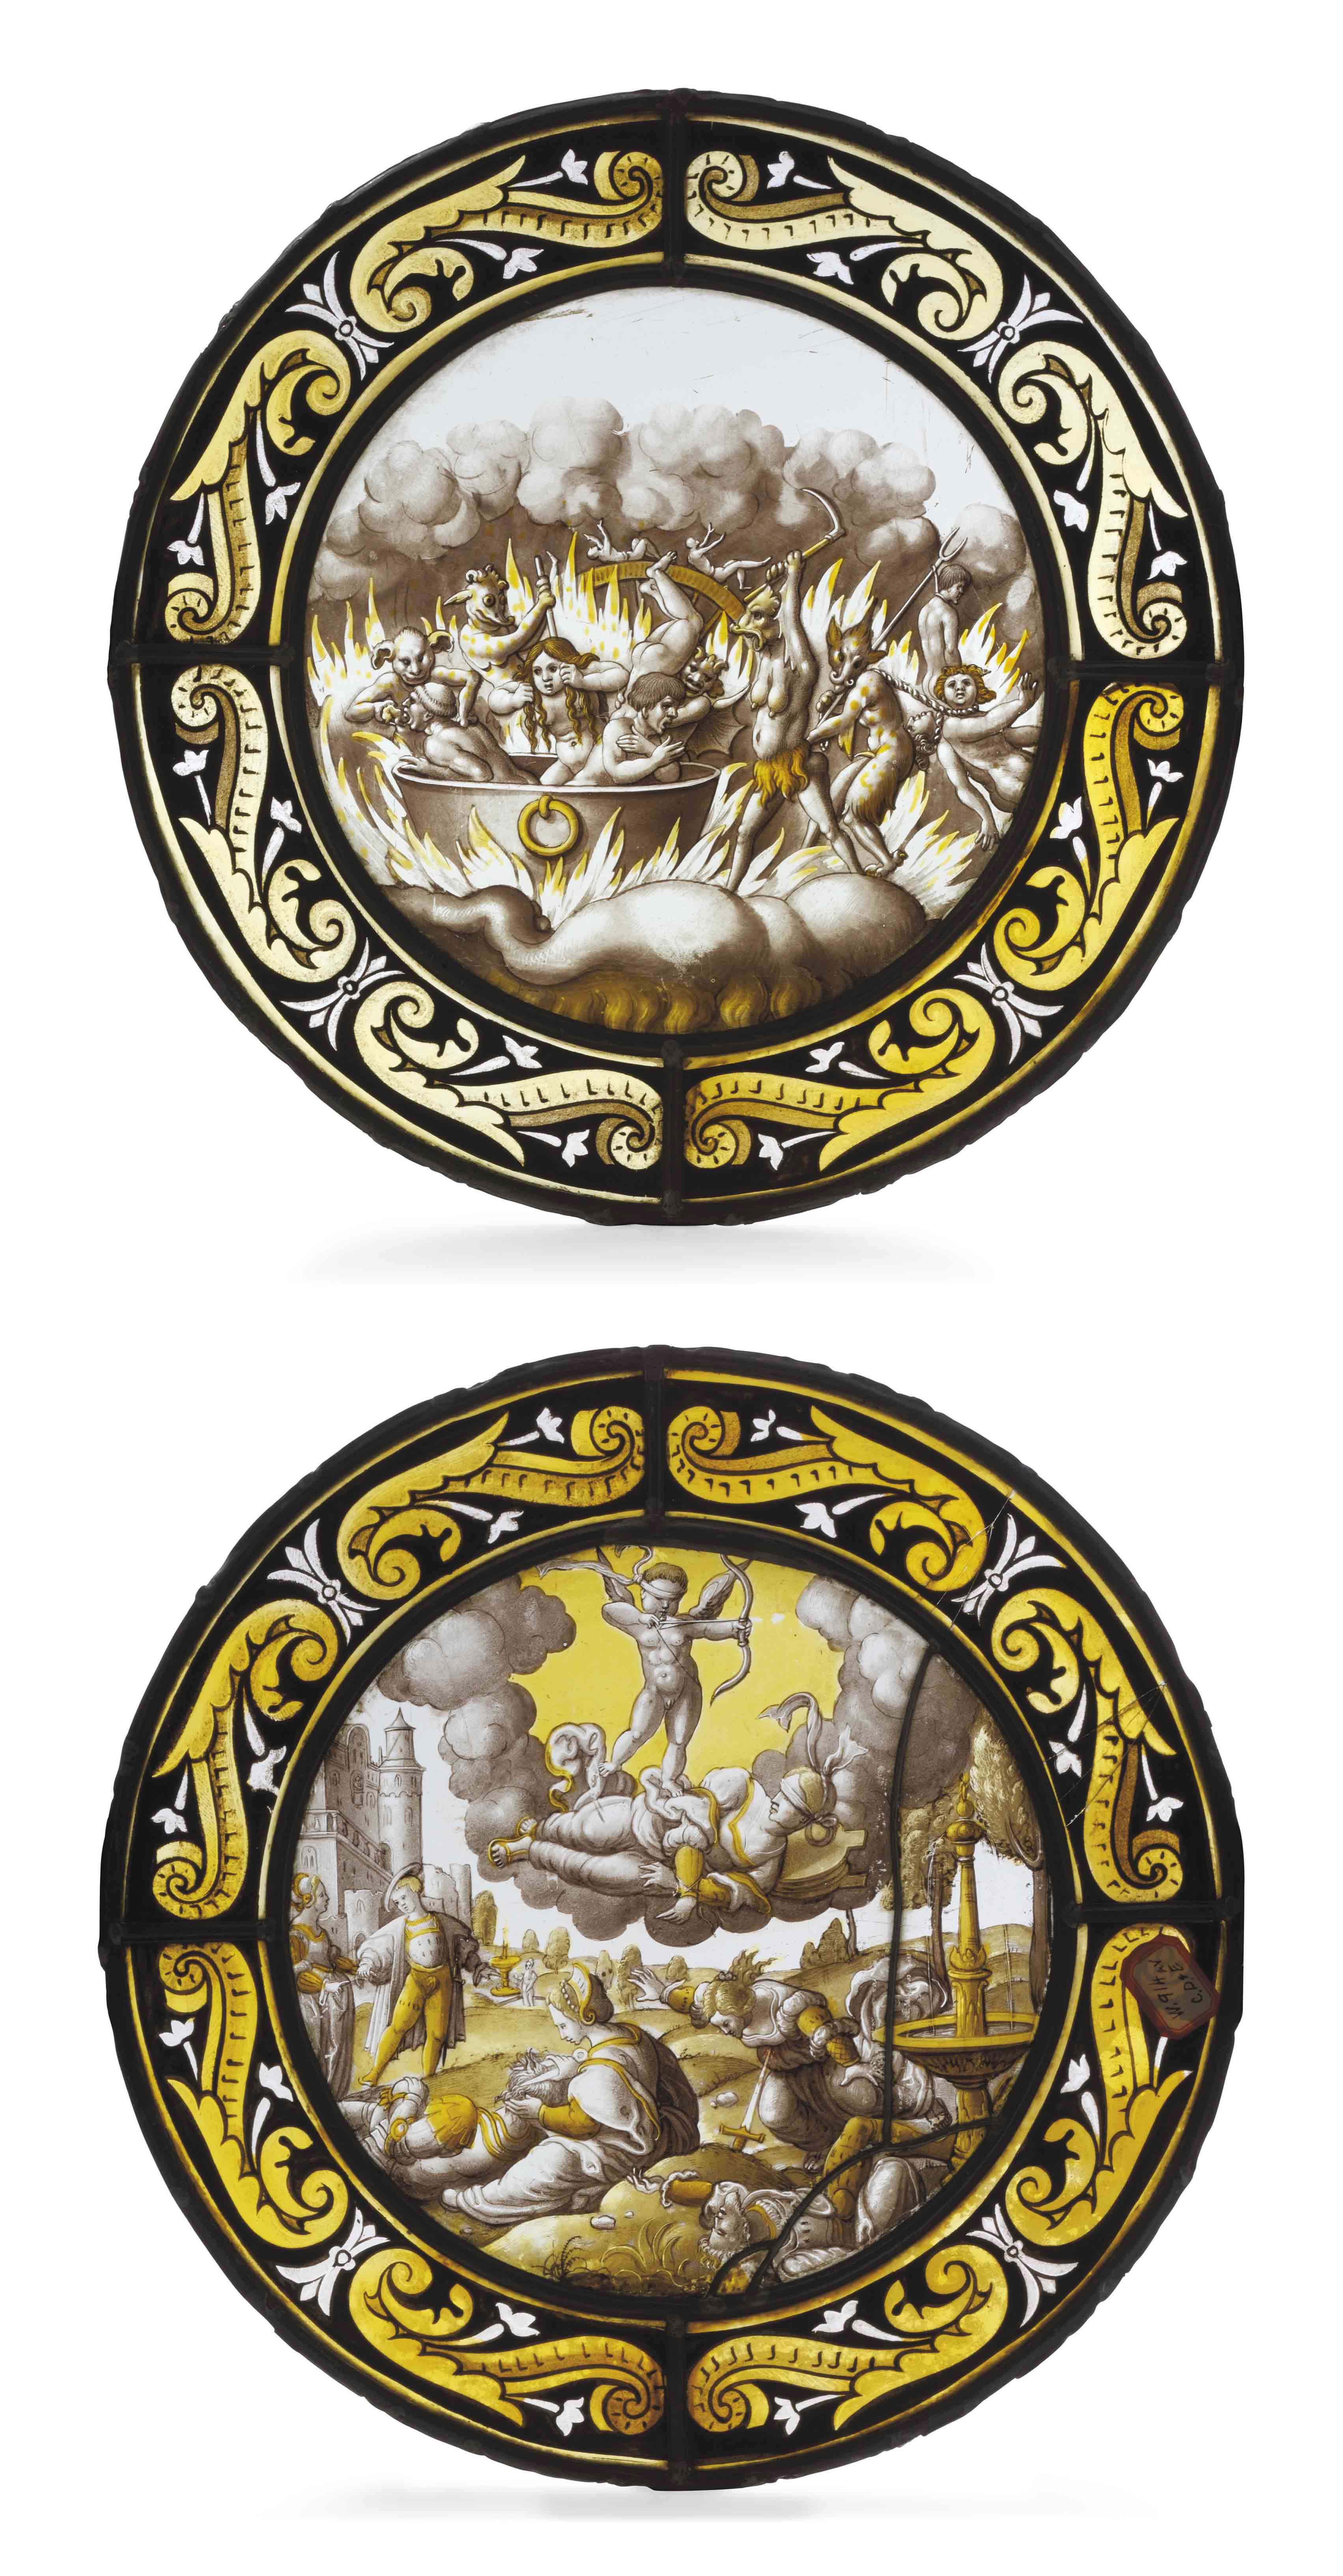 A PAIR OF STAINED GLASS ROUNDE